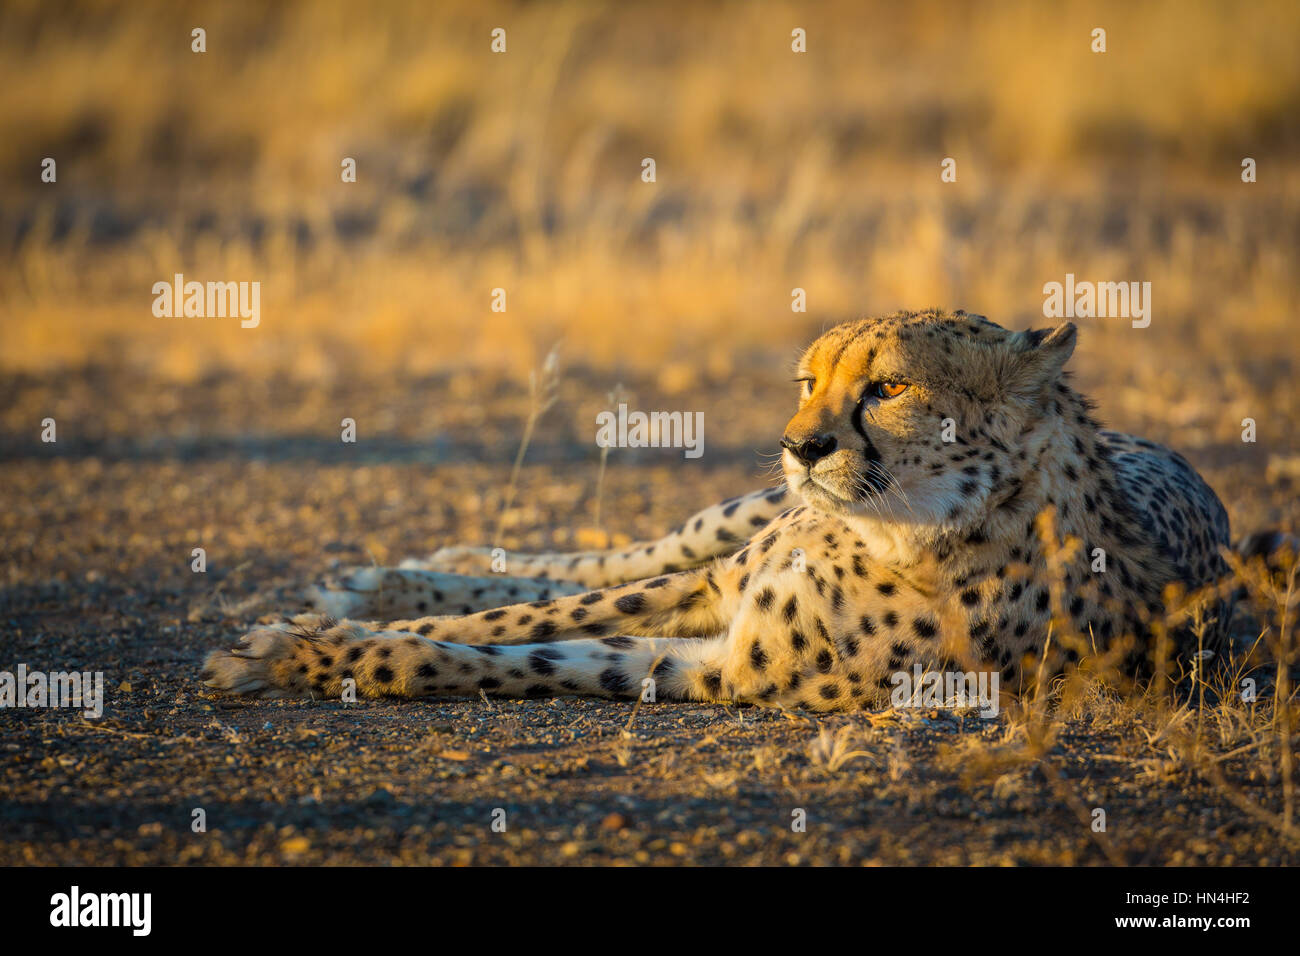 The cheetah (Acinonyx jubatus), also known as the hunting leopard, is a big cat that occurs mainly in eastern and - Stock Image